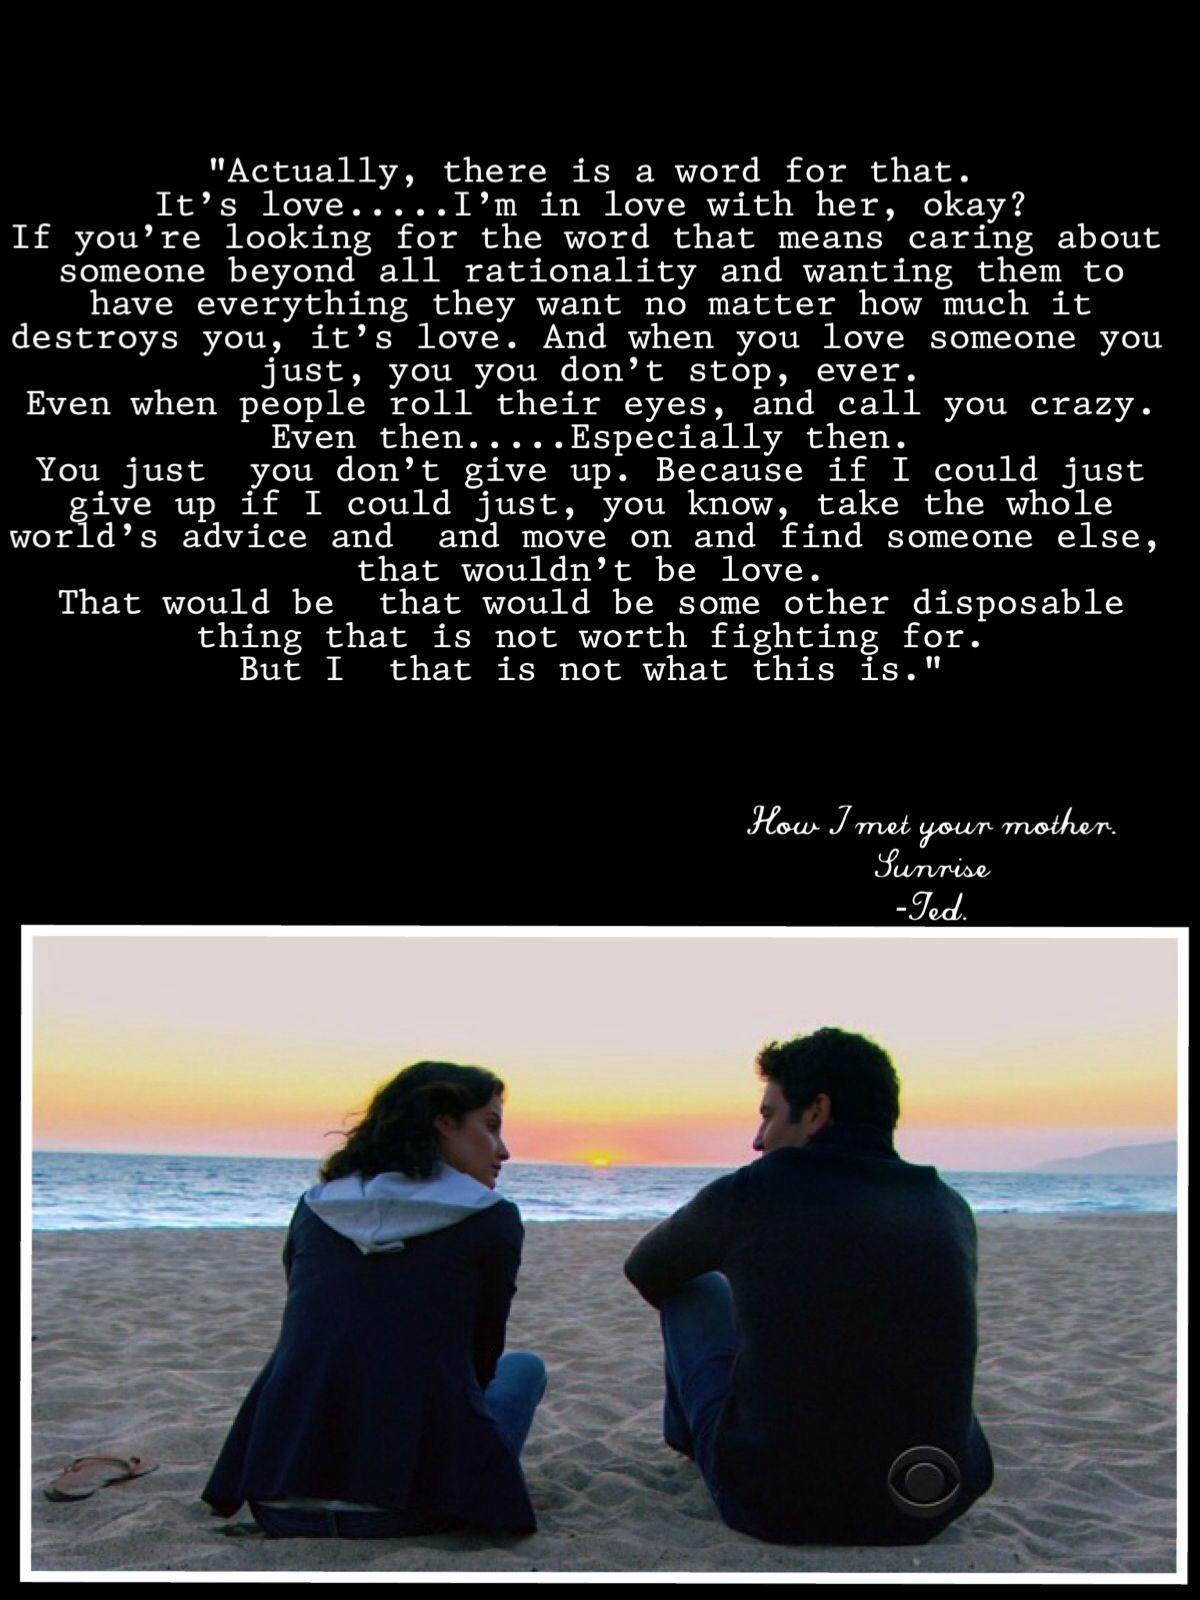 Quote From How I Met Your Mother  How I met your mother Sunrise season 9 Himym quotes